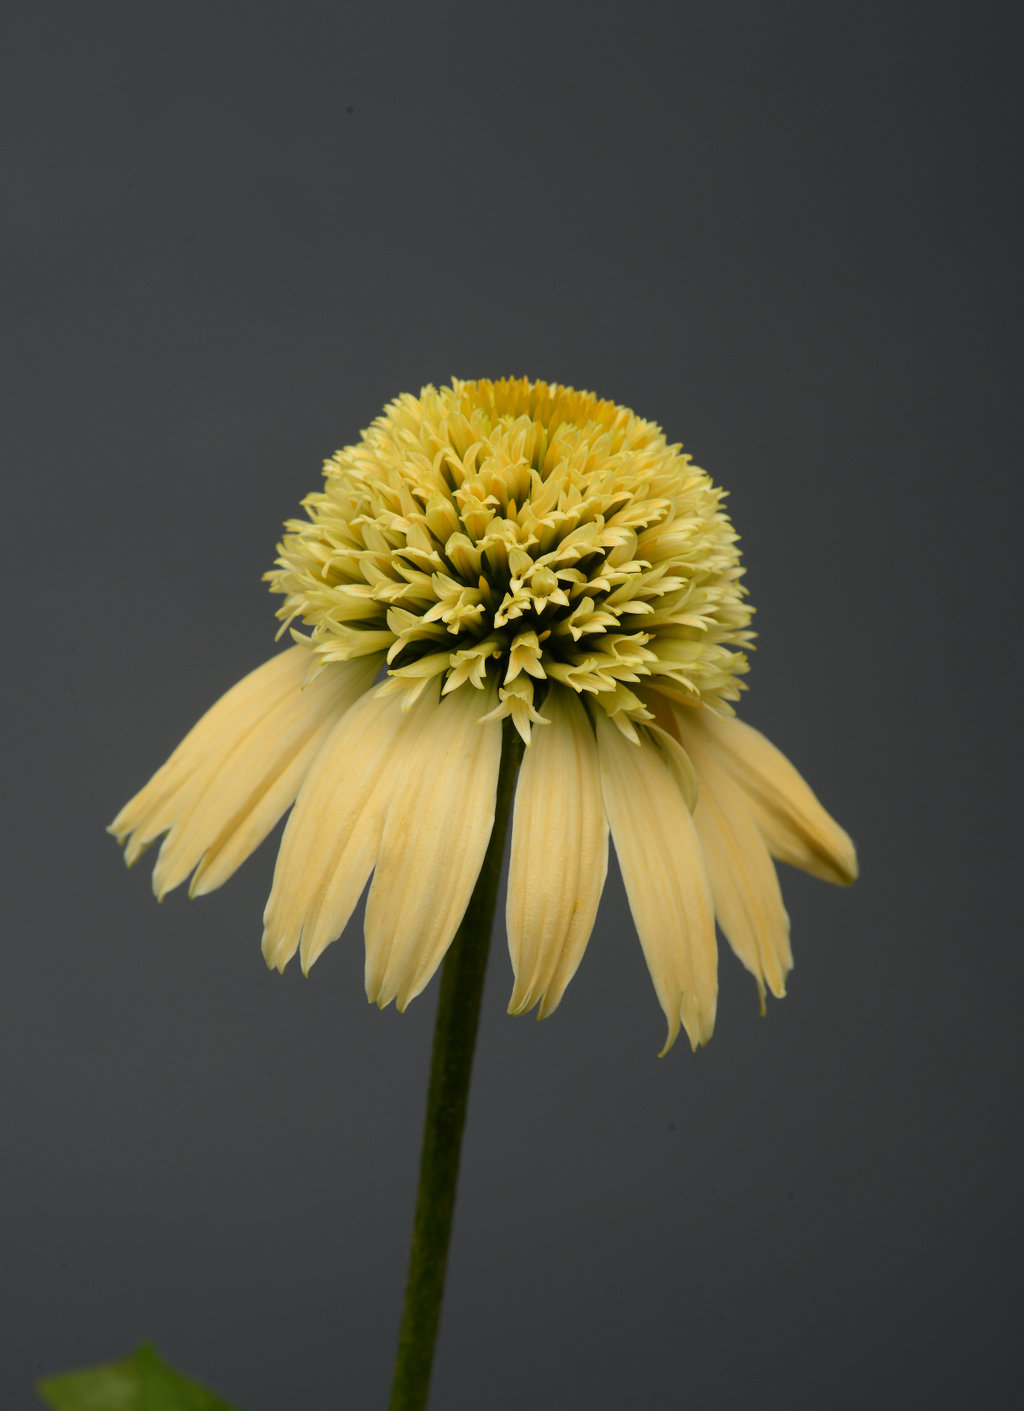 Double Scoop Lemon Cream Coneflower Echinacea Hybrid